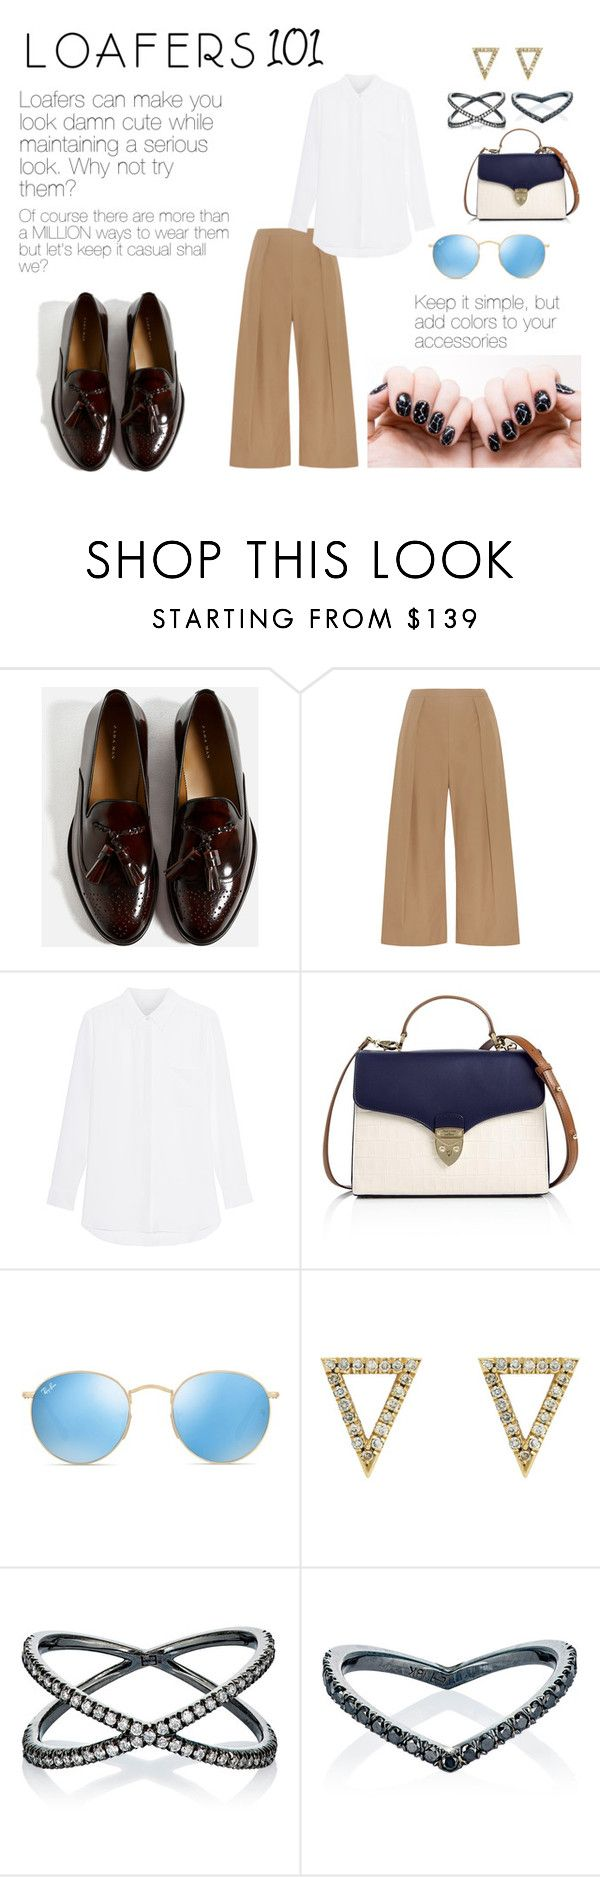 """""""Loafers 101"""" by windrasiregar on Polyvore featuring N°21, Aspinal of London, Ray-Ban and Eva Fehren"""